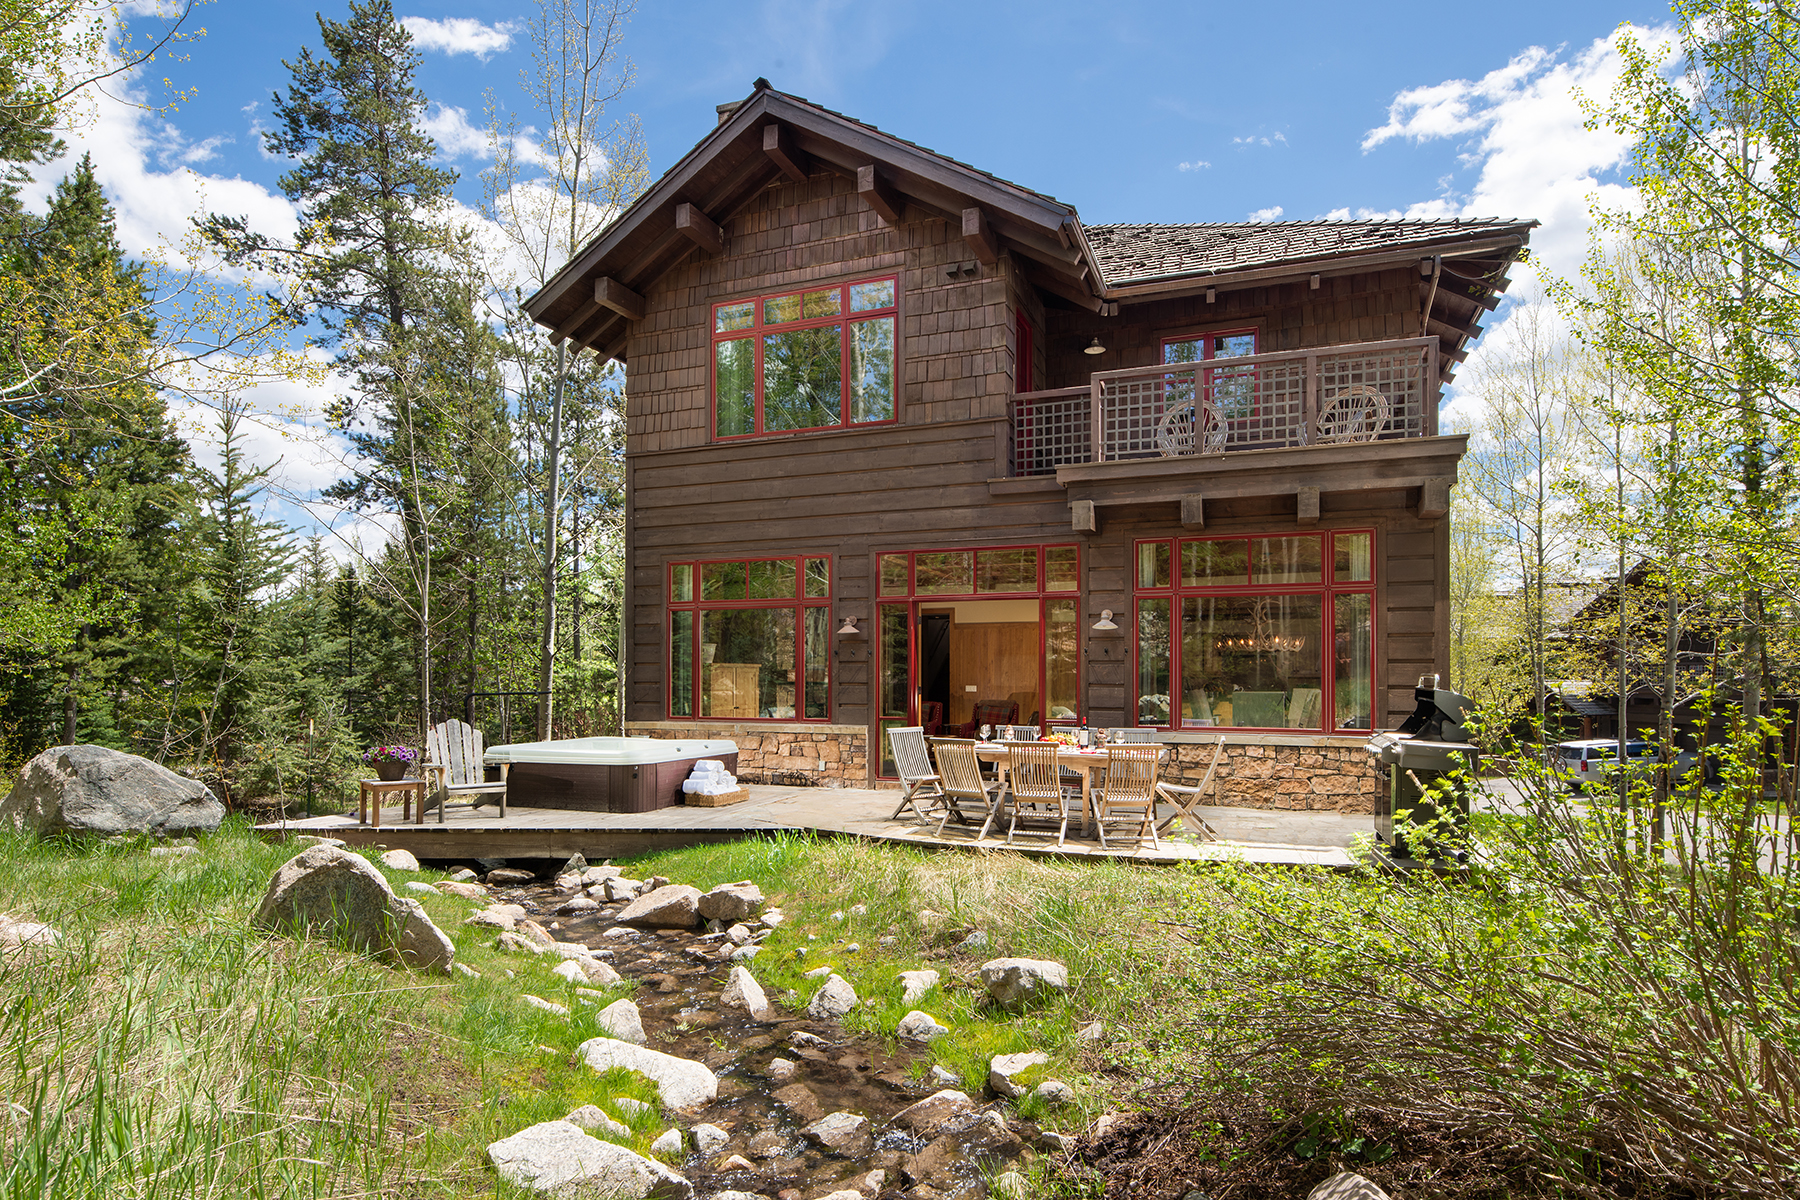 Single Family Homes for Sale at Ski-in, Ski-Out Home 3193 W Washakie Rd Teton Village, Wyoming 83025 United States